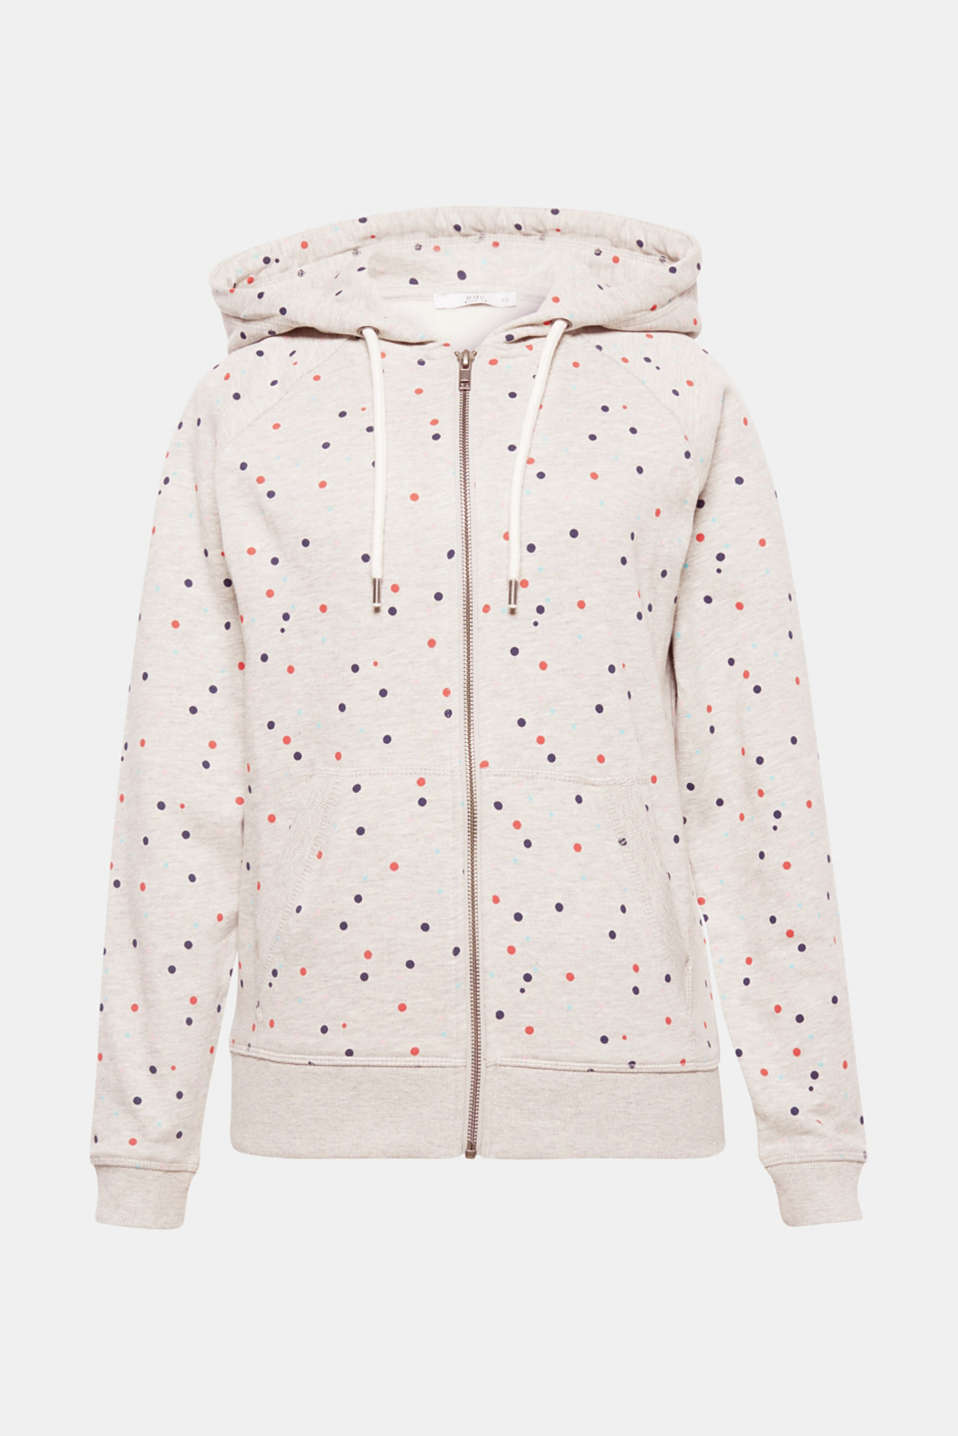 We love polka dots! This fluffy, soft cardigan with a hood contains lots of bright polka dots, which creates a wonderful contrast against the melange sweatshirt fabric.